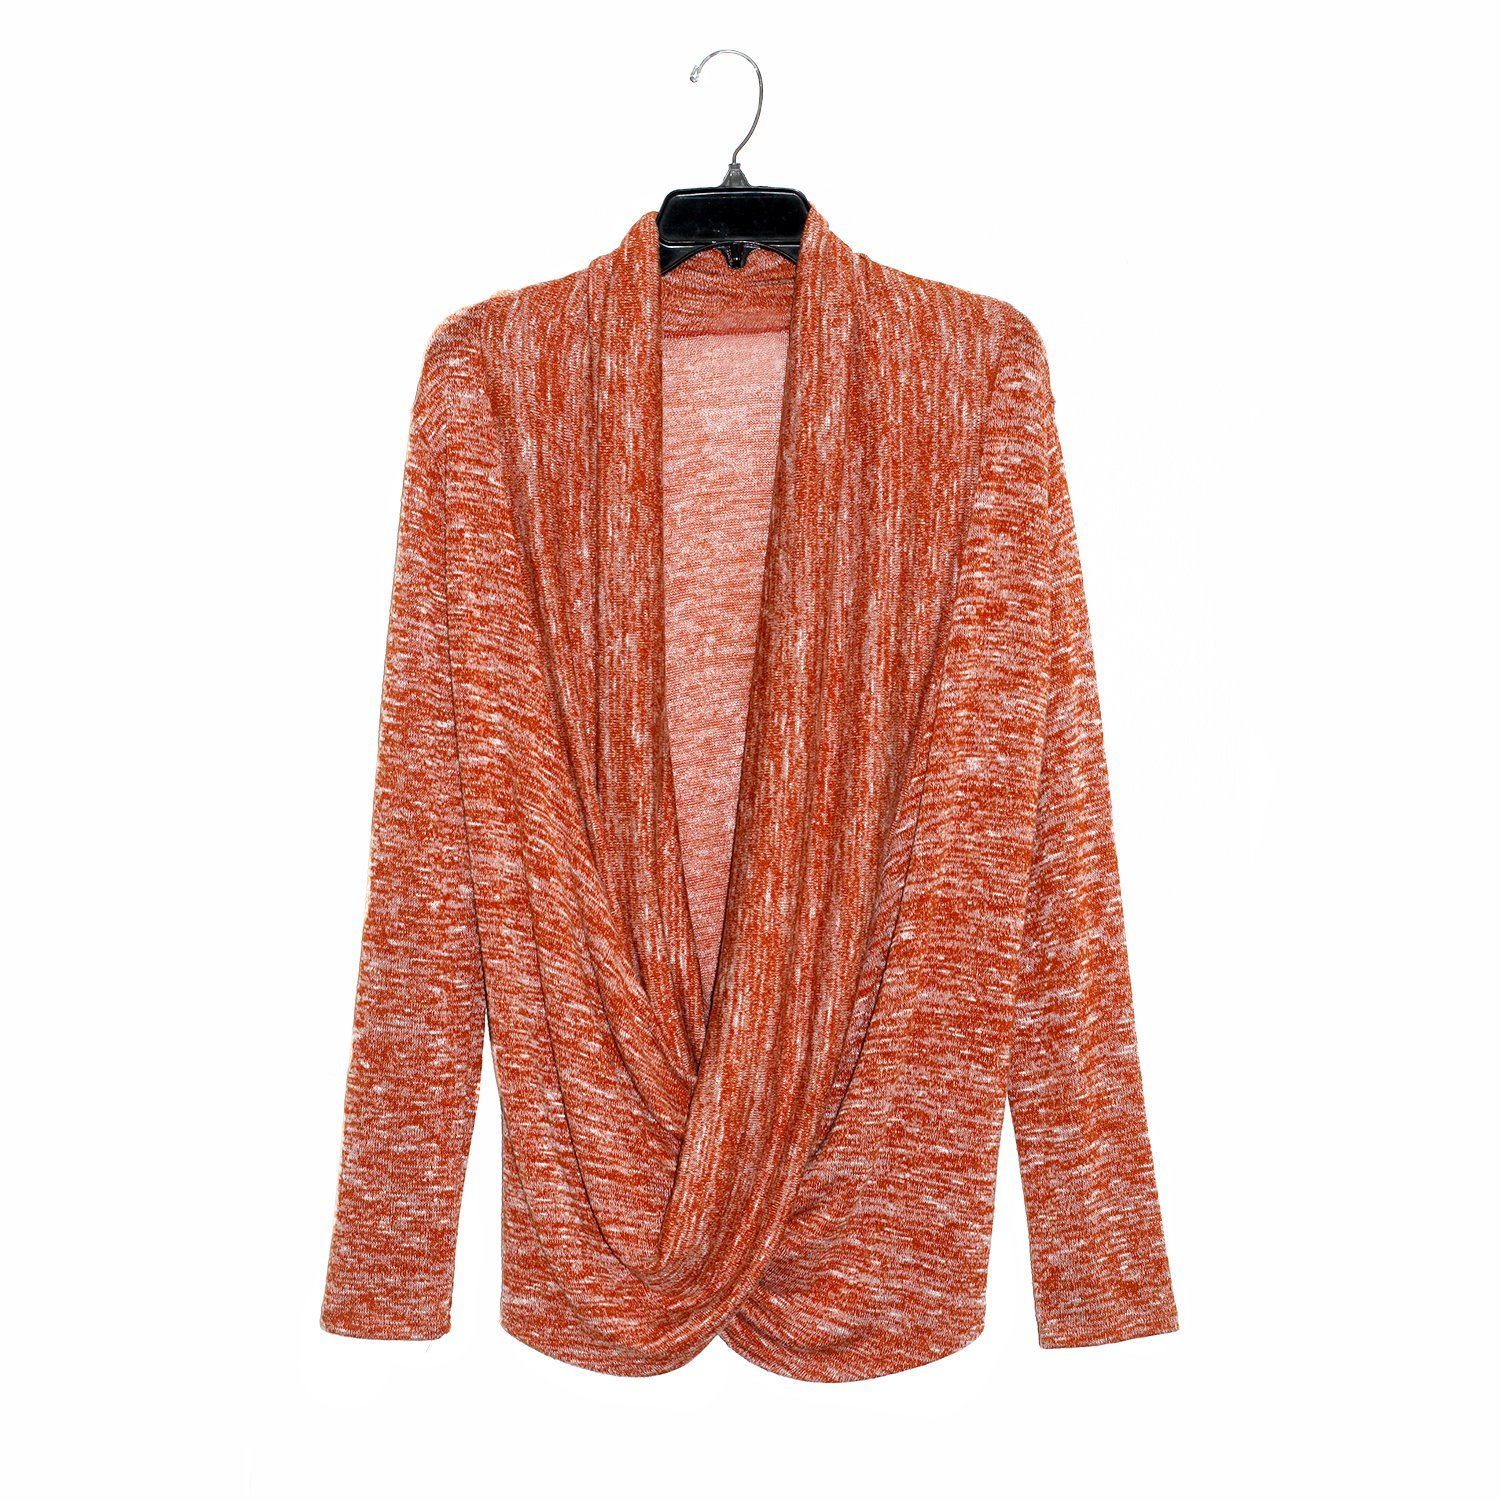 d77637393 Cheap House Sweater, find House Sweater deals on line at Alibaba.com